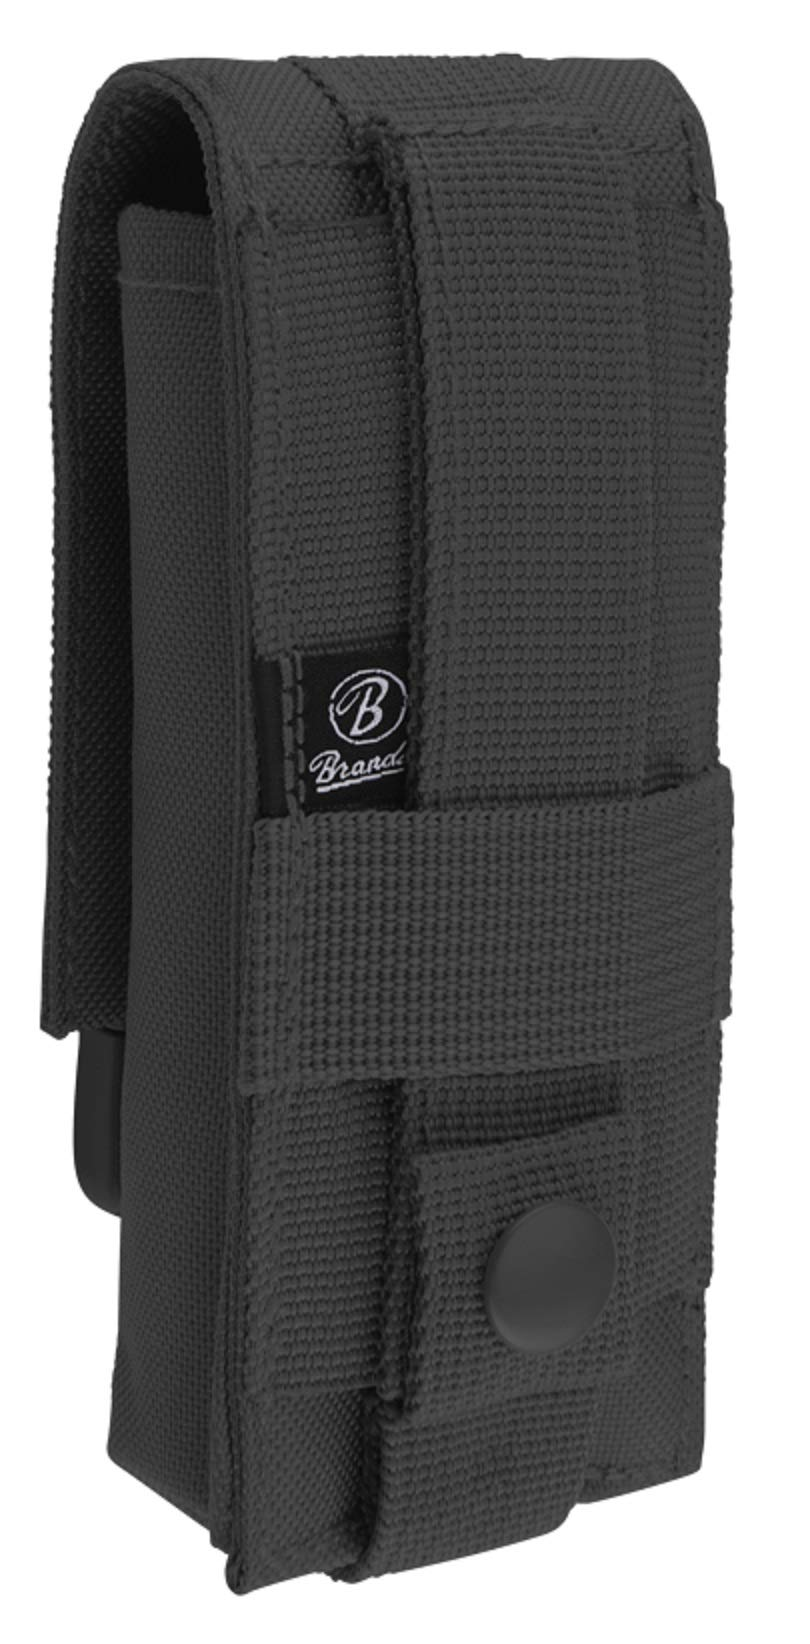 614FjwIF7DL - Brandit Molle Multi Pouches - Belt Bags, Accessory Pockets, Tool Pockets, Sizes Small, Medium, and Large in 6 Colours